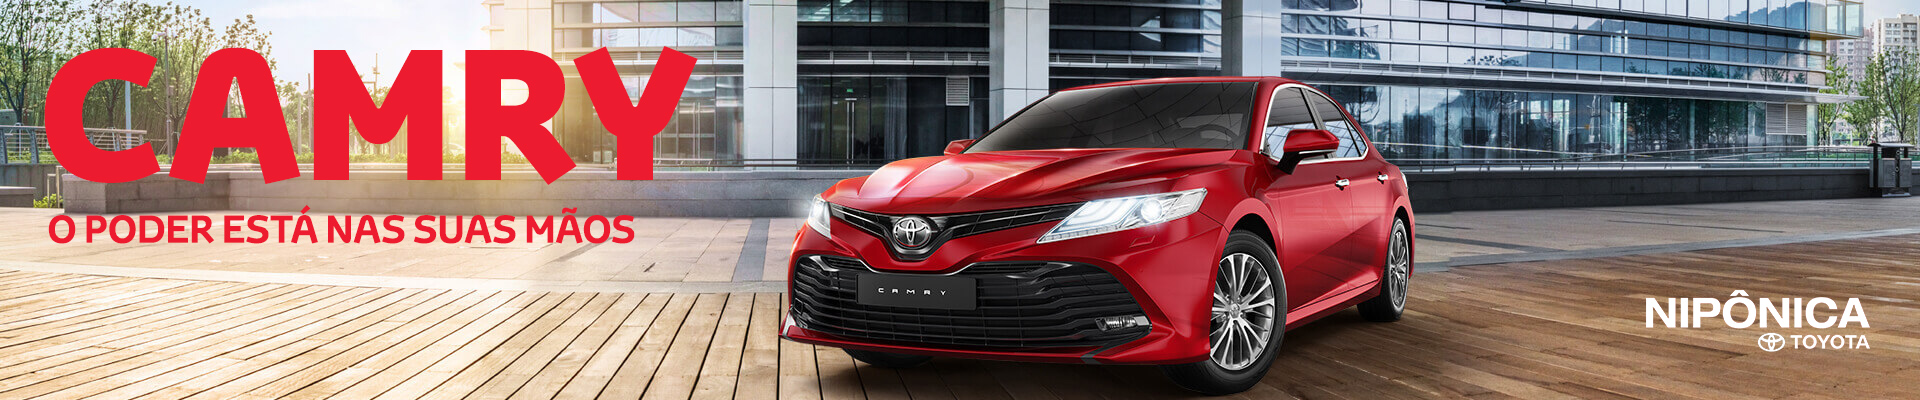 Banner Camry